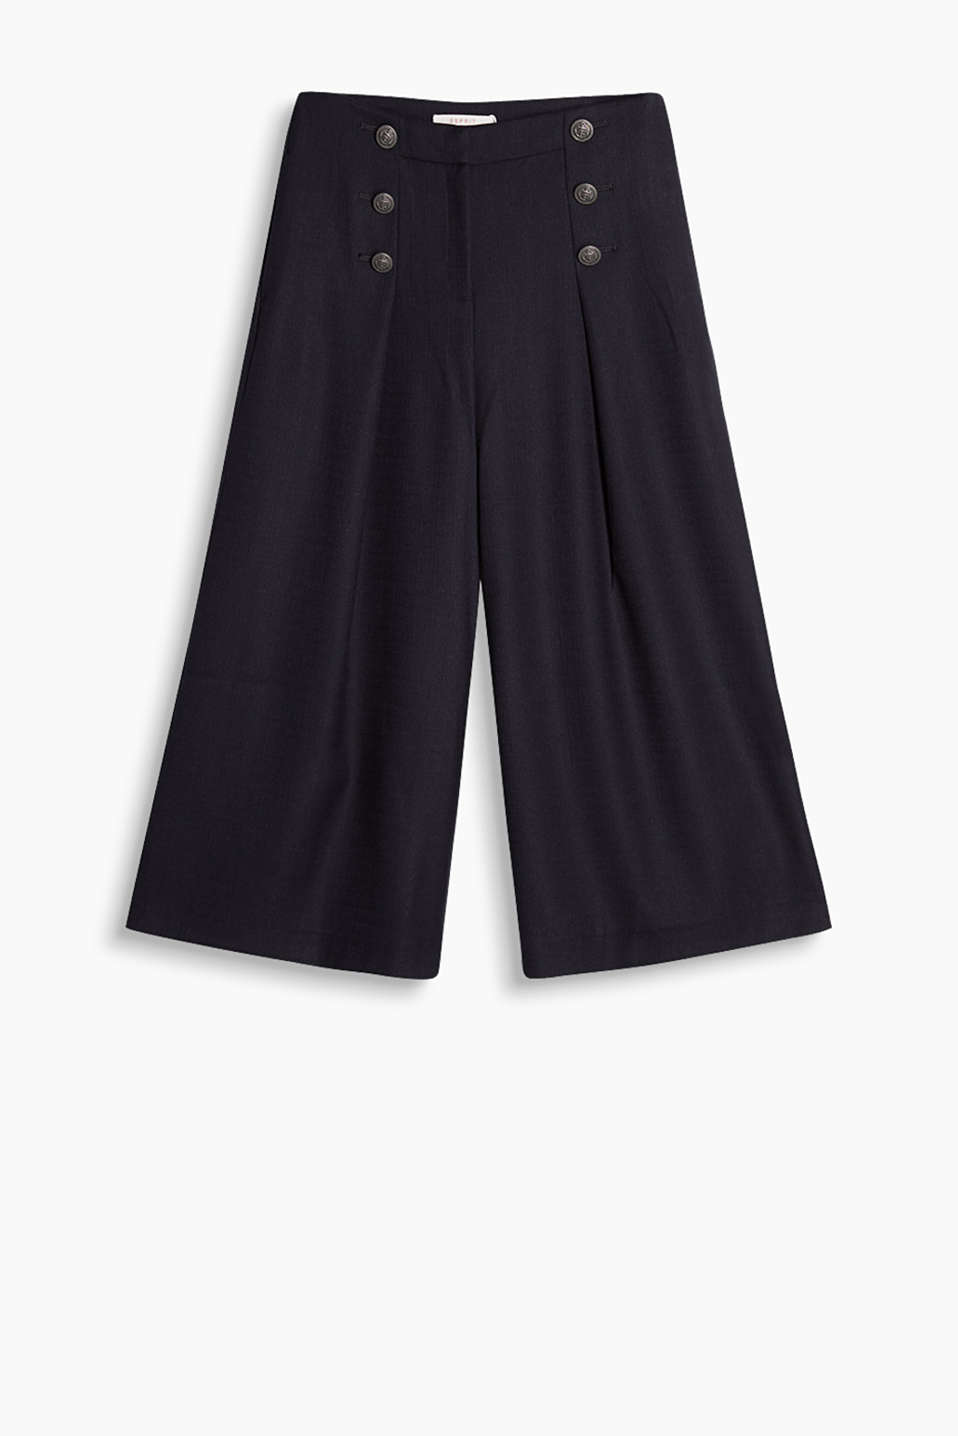 Widely cut culottes with decorative buttons on the waistband